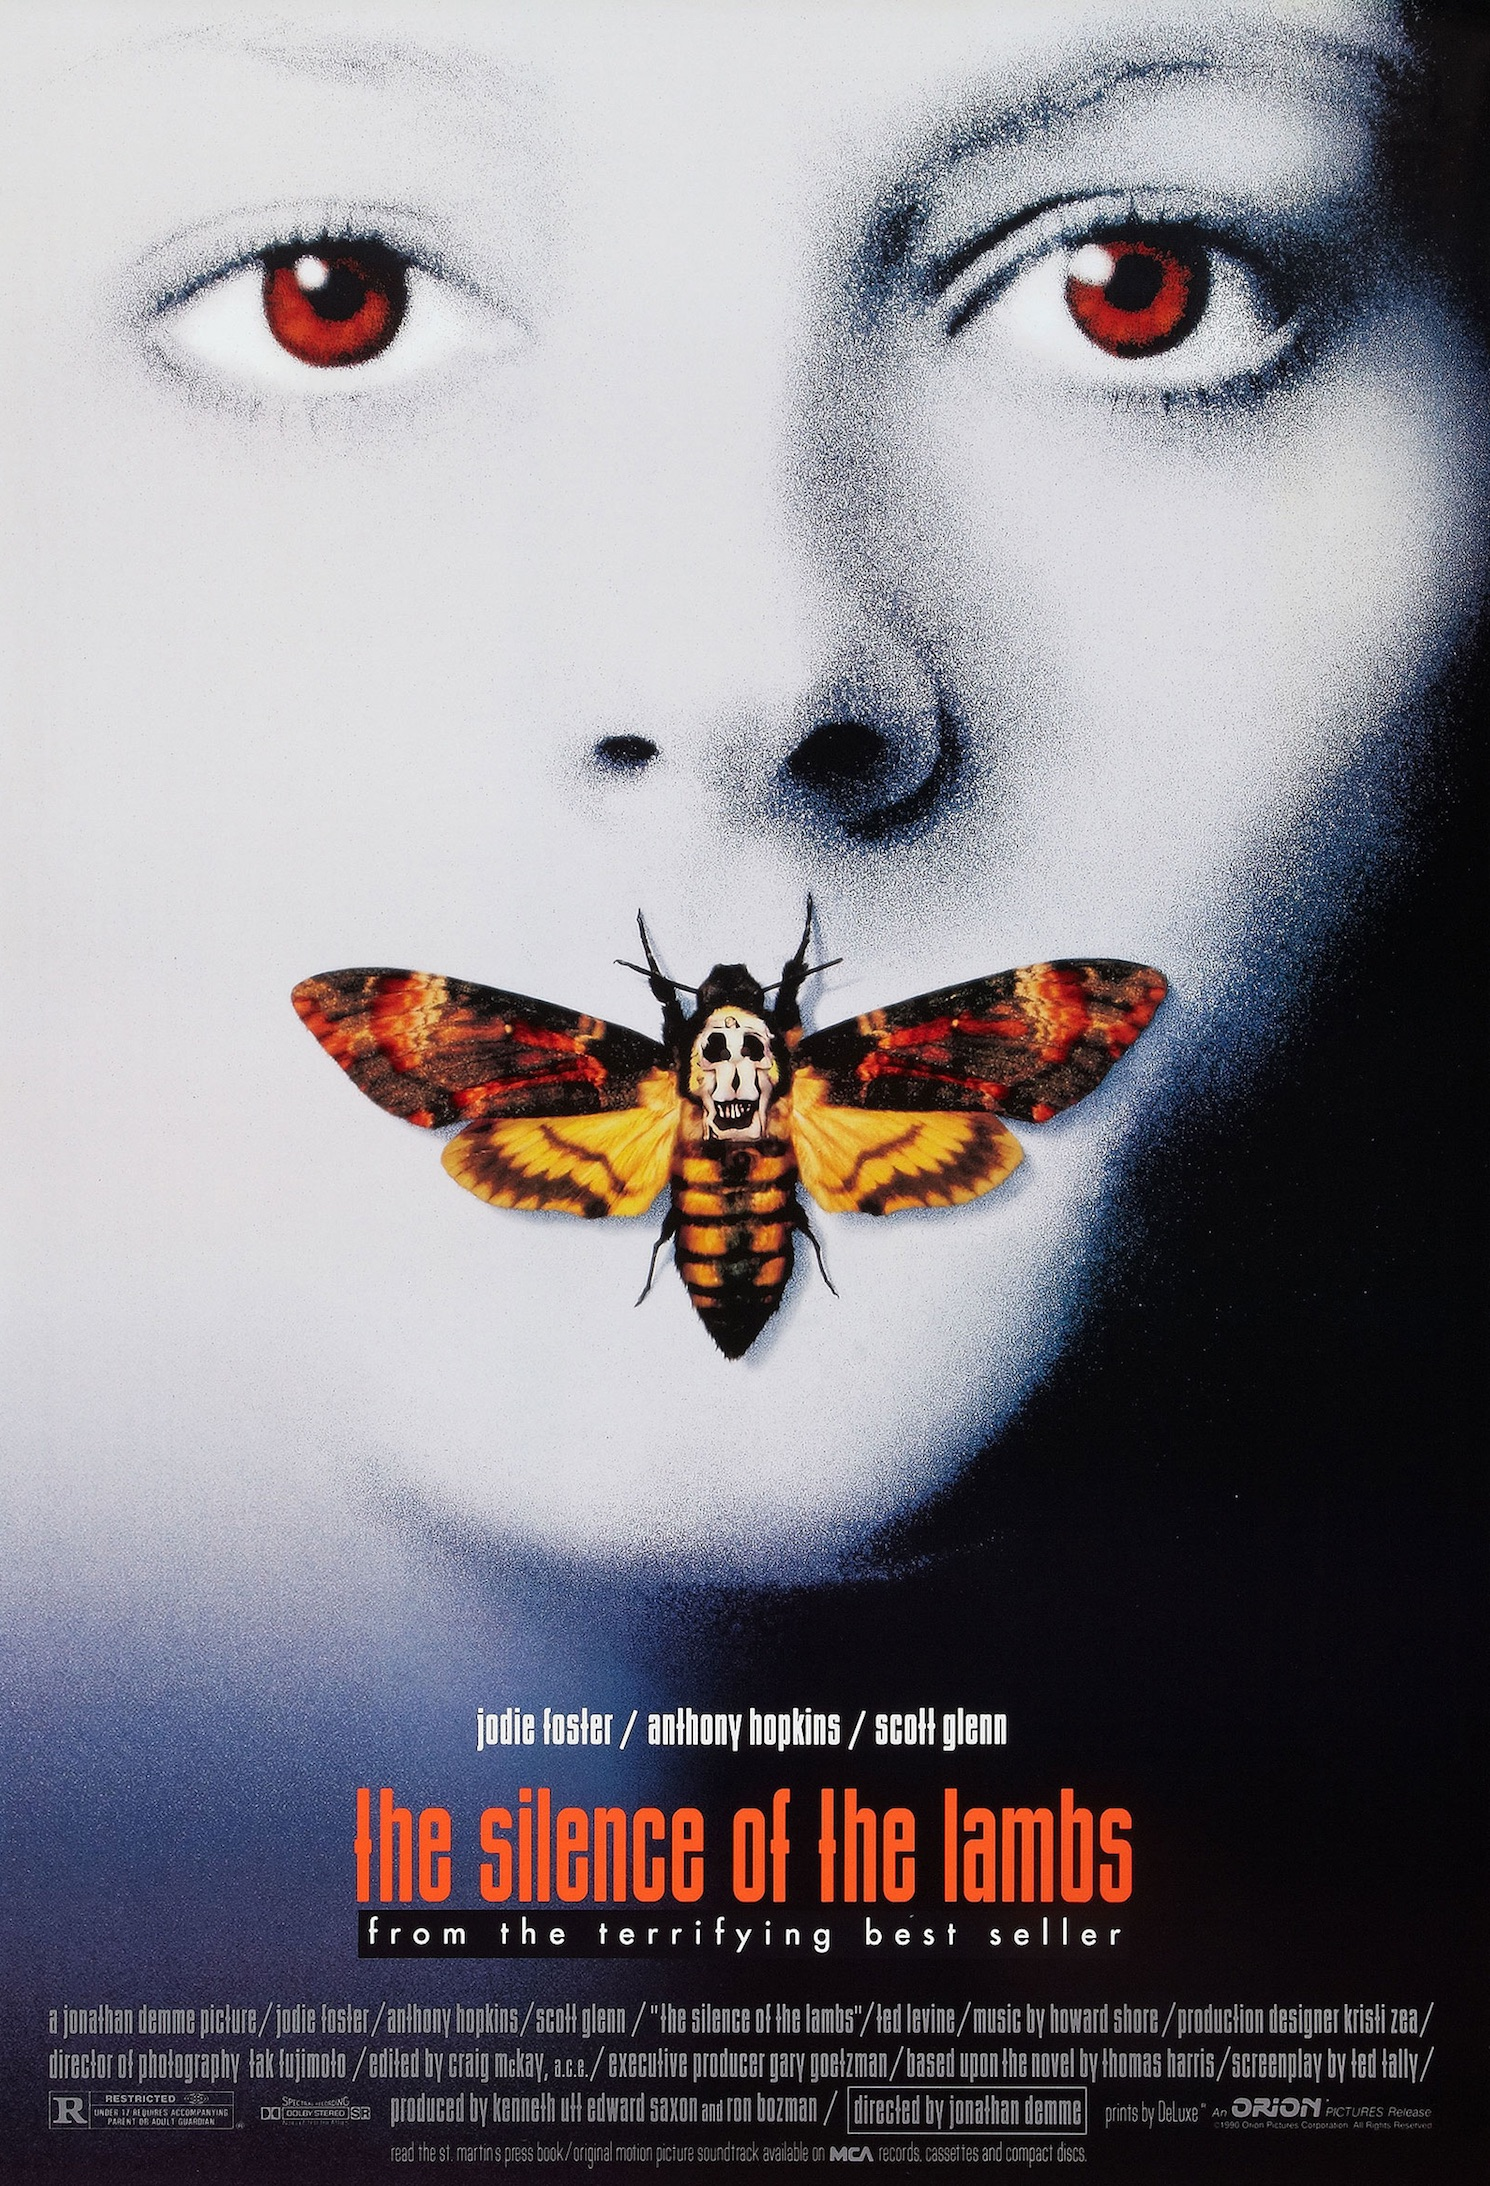 silence-of-the-lambs-poster.jpg